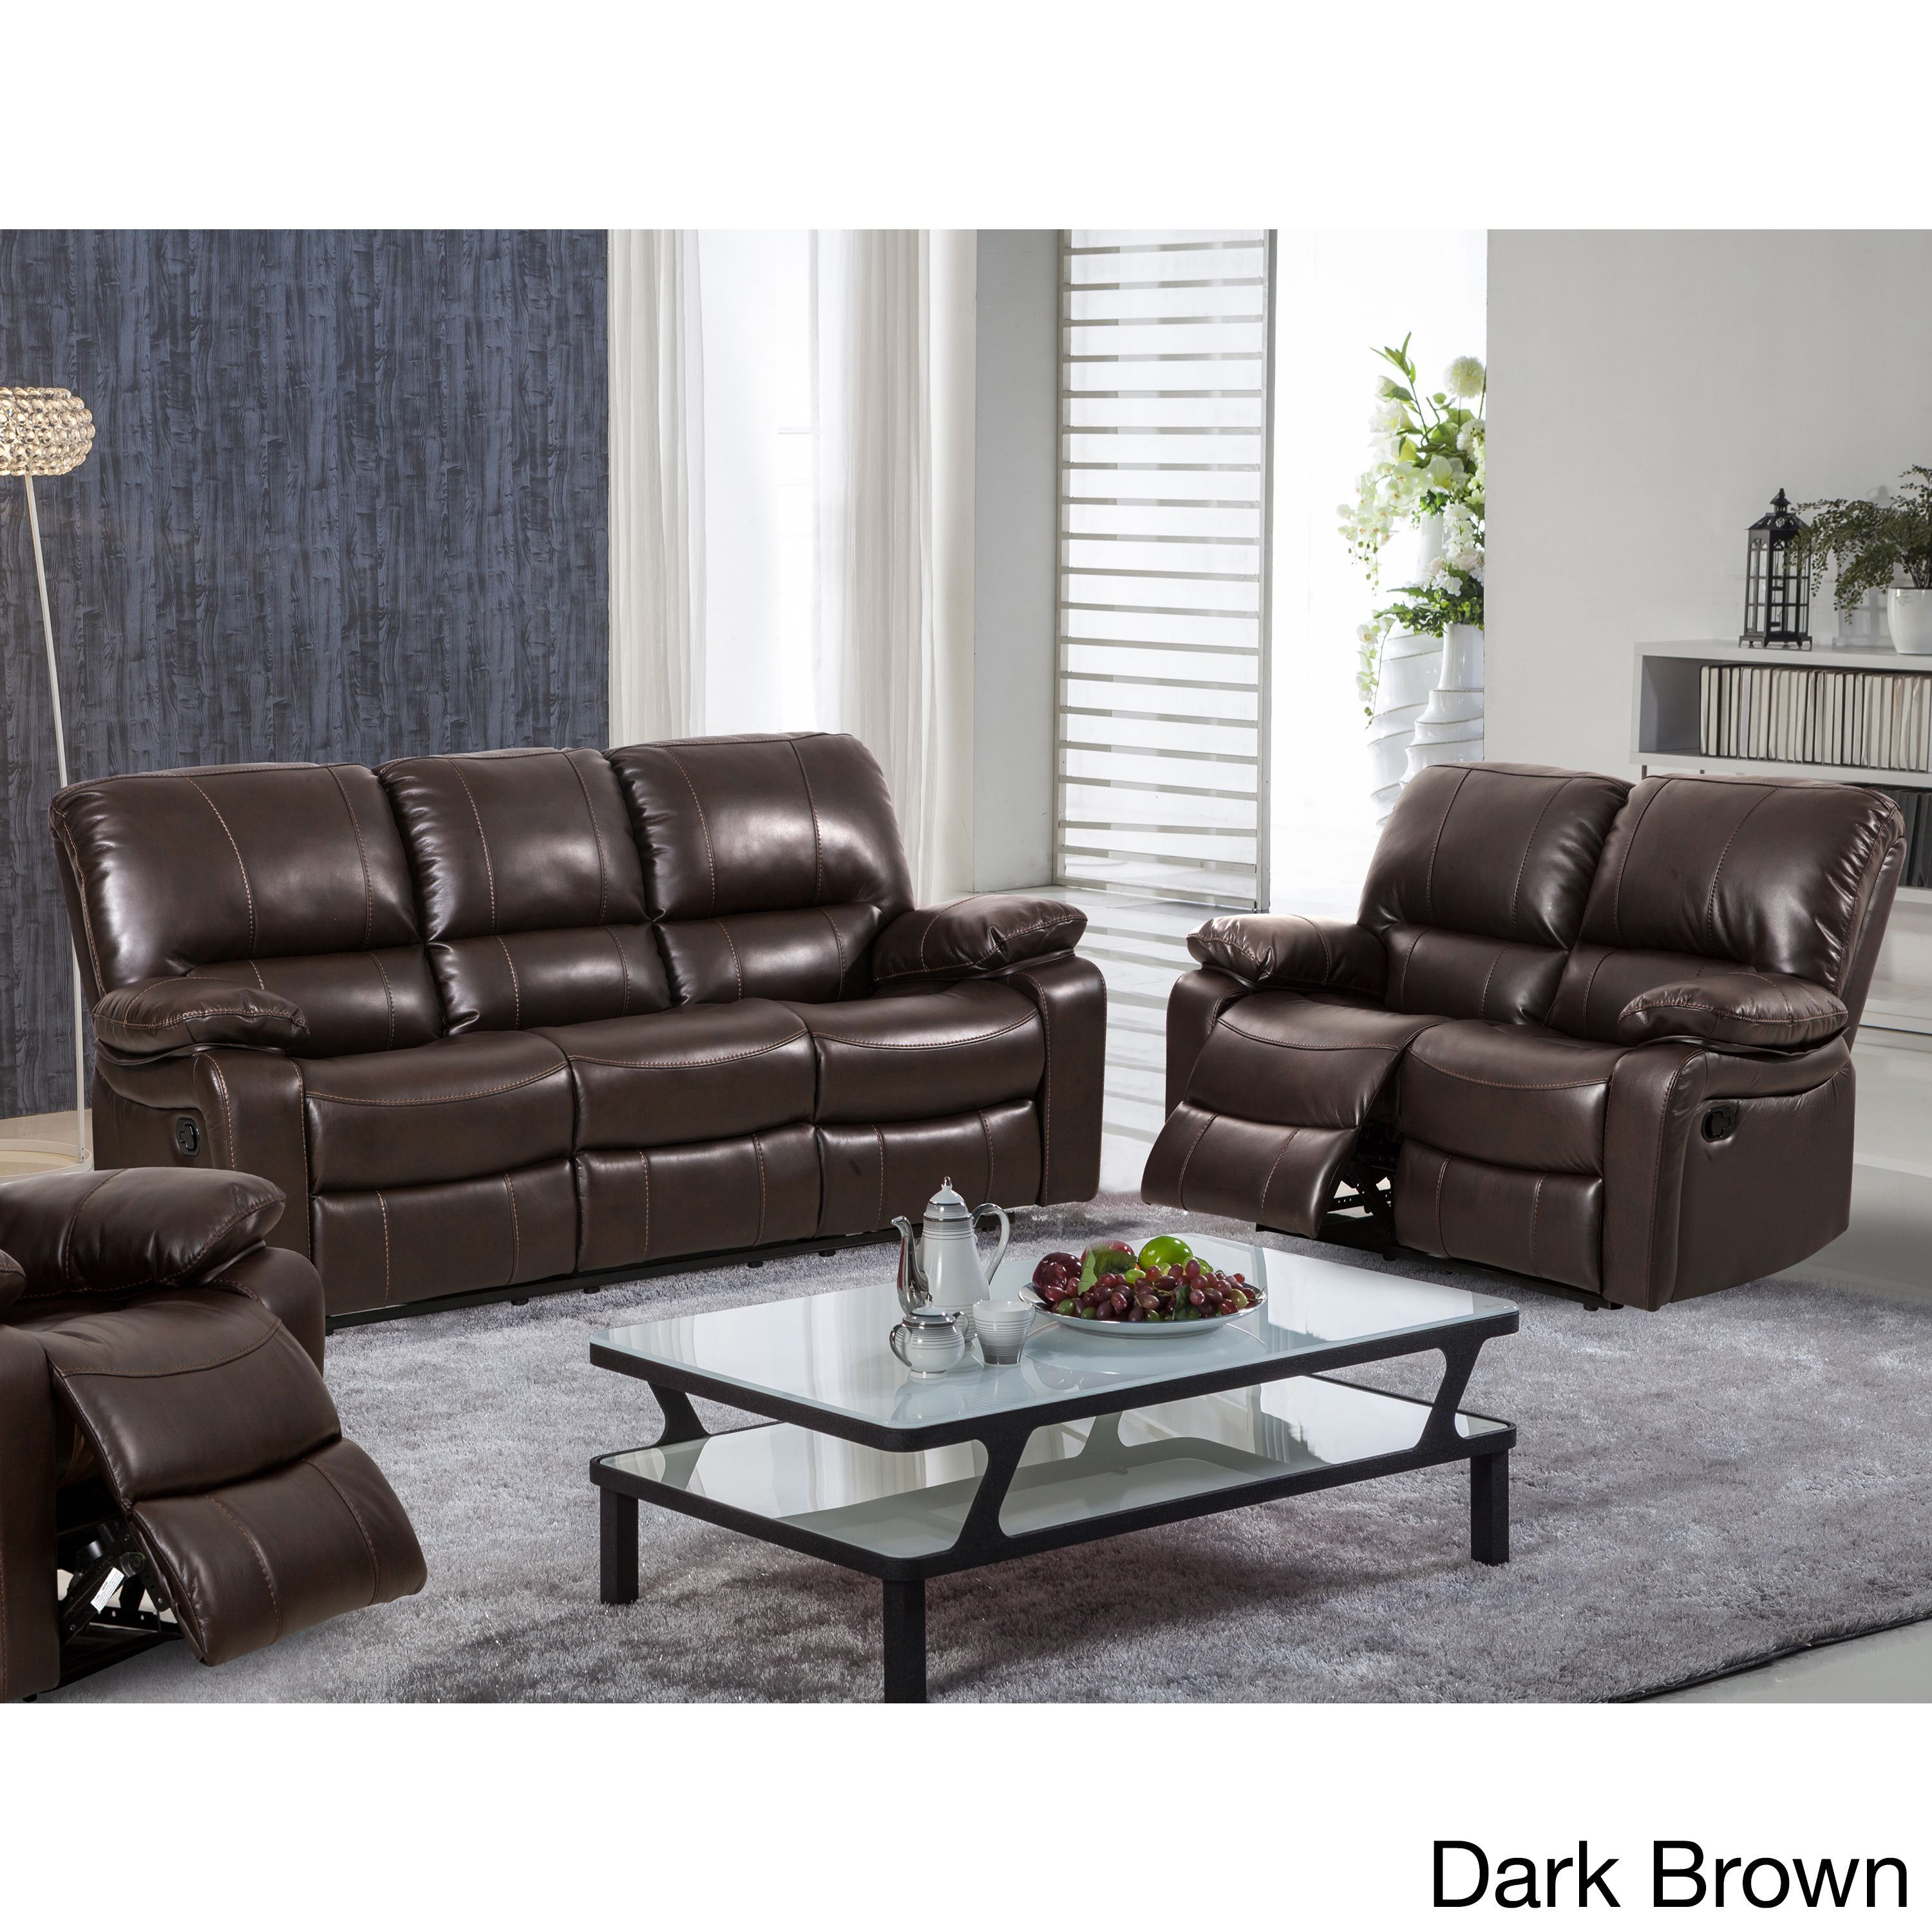 Samantha Leather Gel 2 Piece Reclining Sofa And Loveseat Living Room